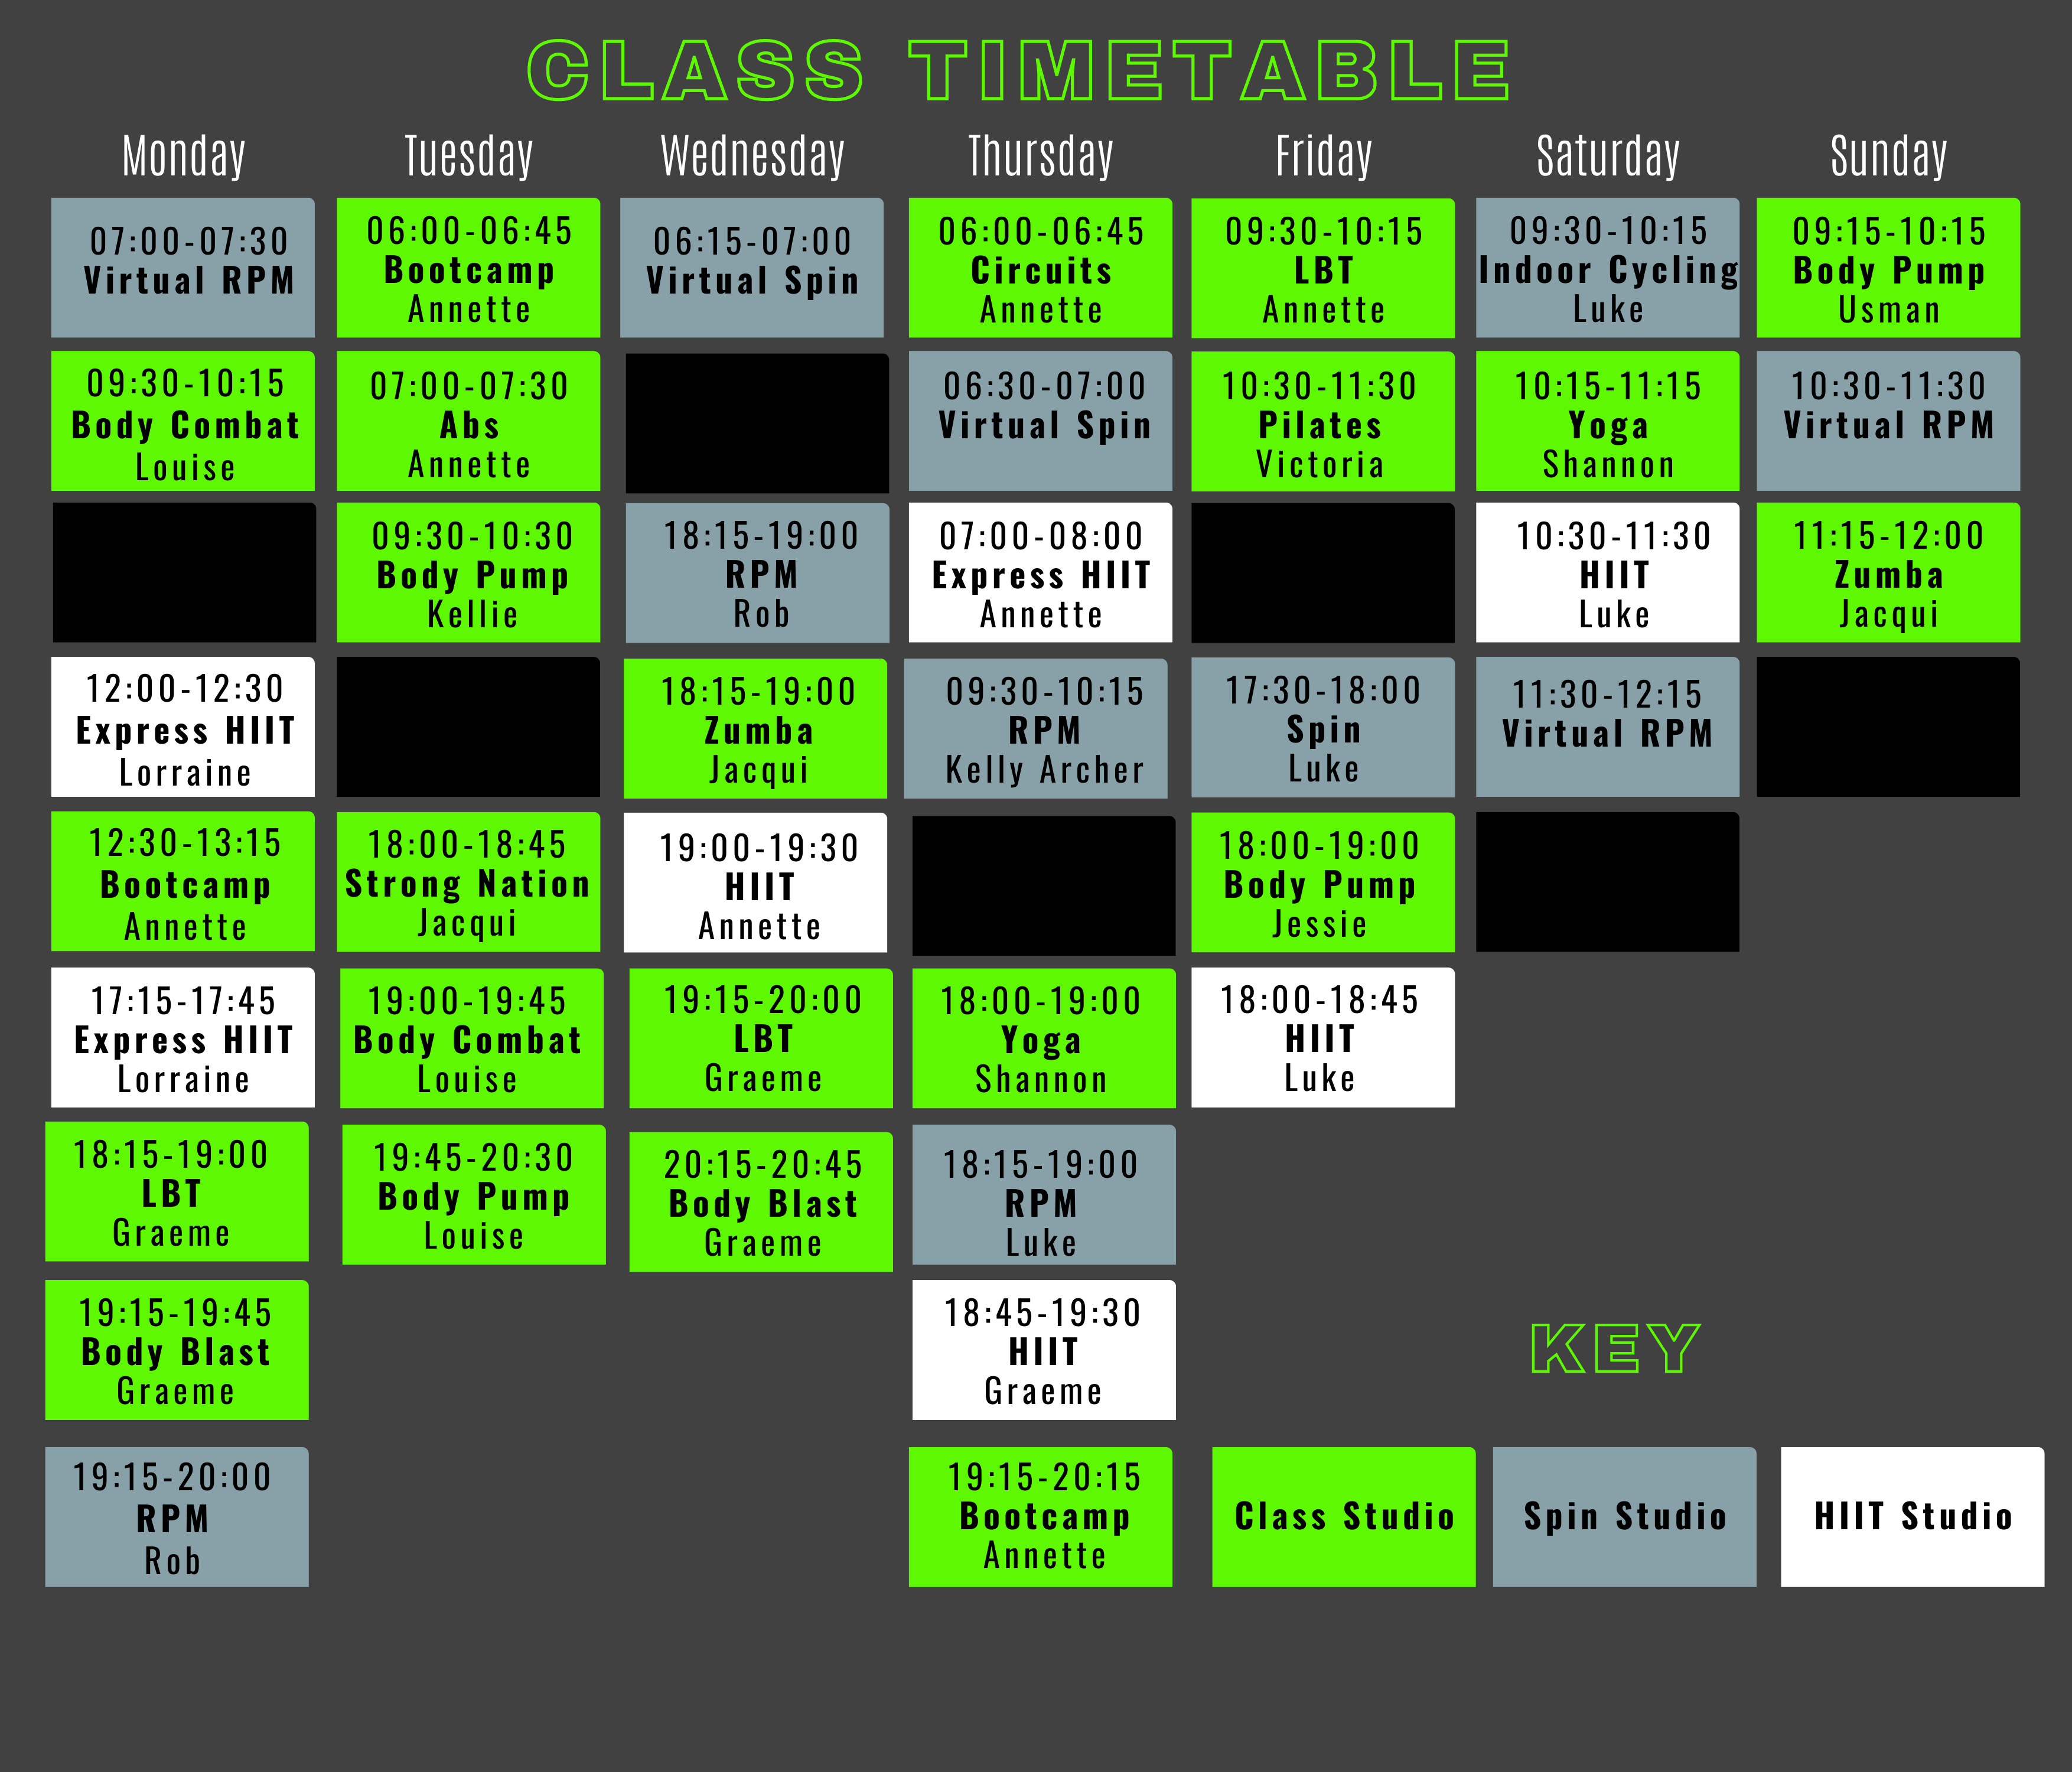 May 2021 Class Timetable - HQ